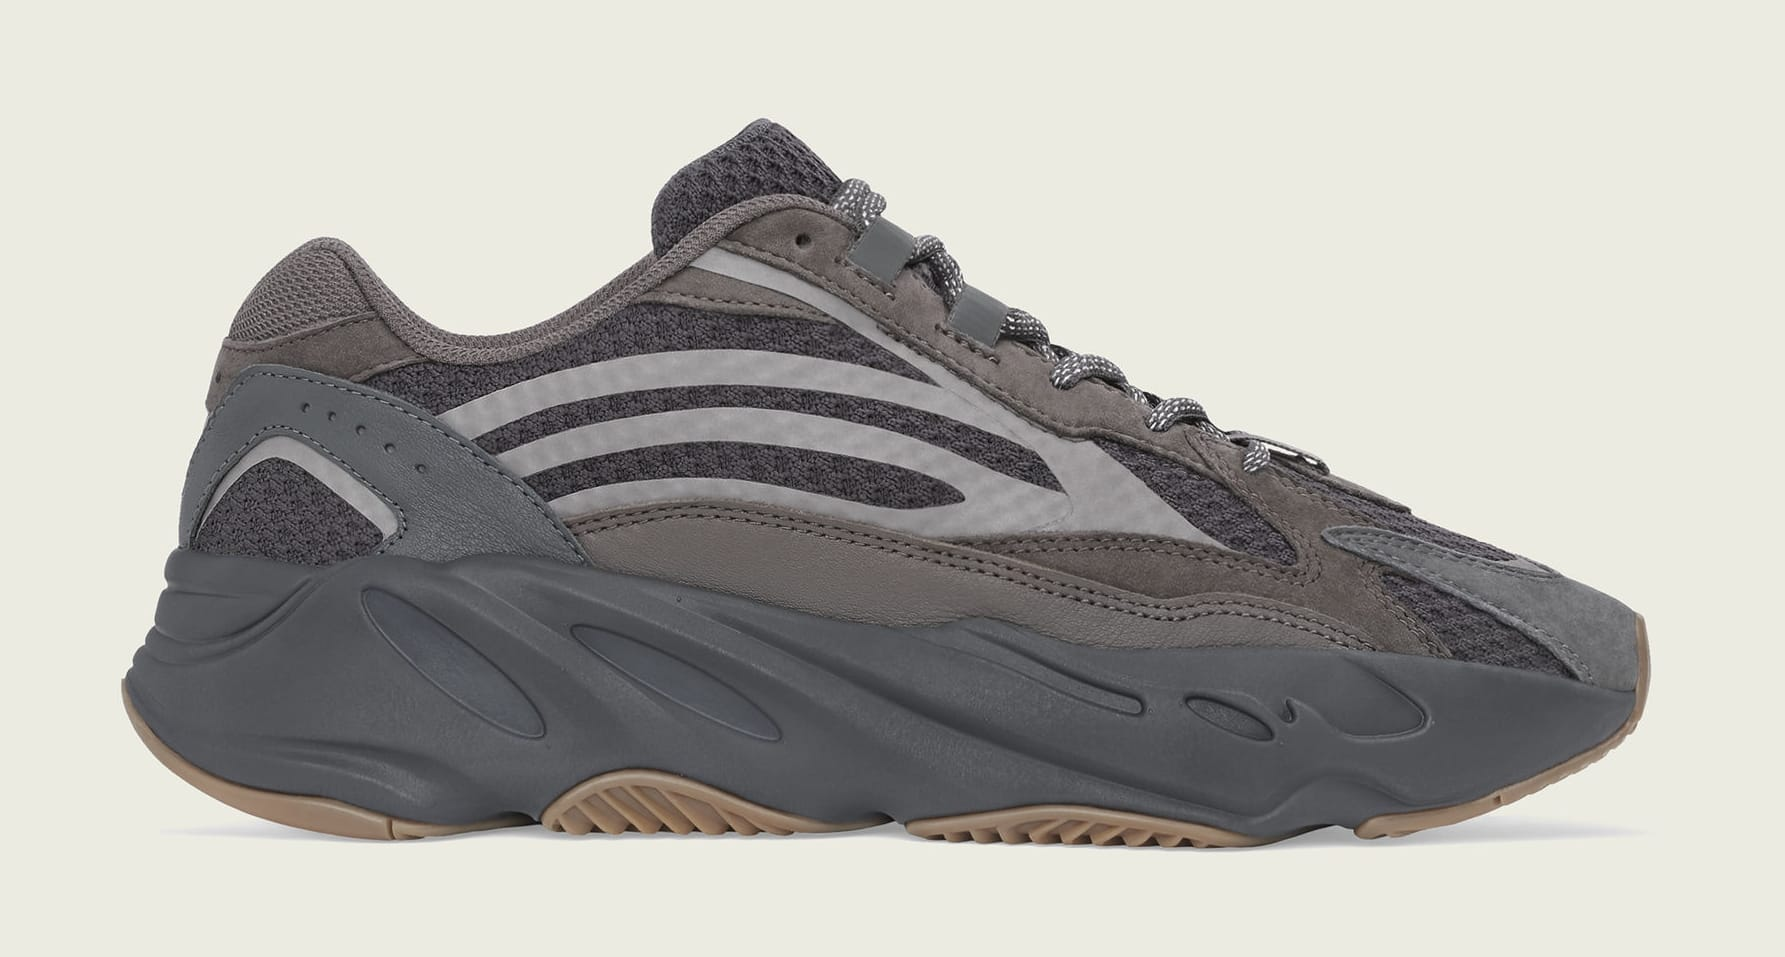 Adidas Yeezy Boost 700 V2 'Geode' EG6860 Lateral